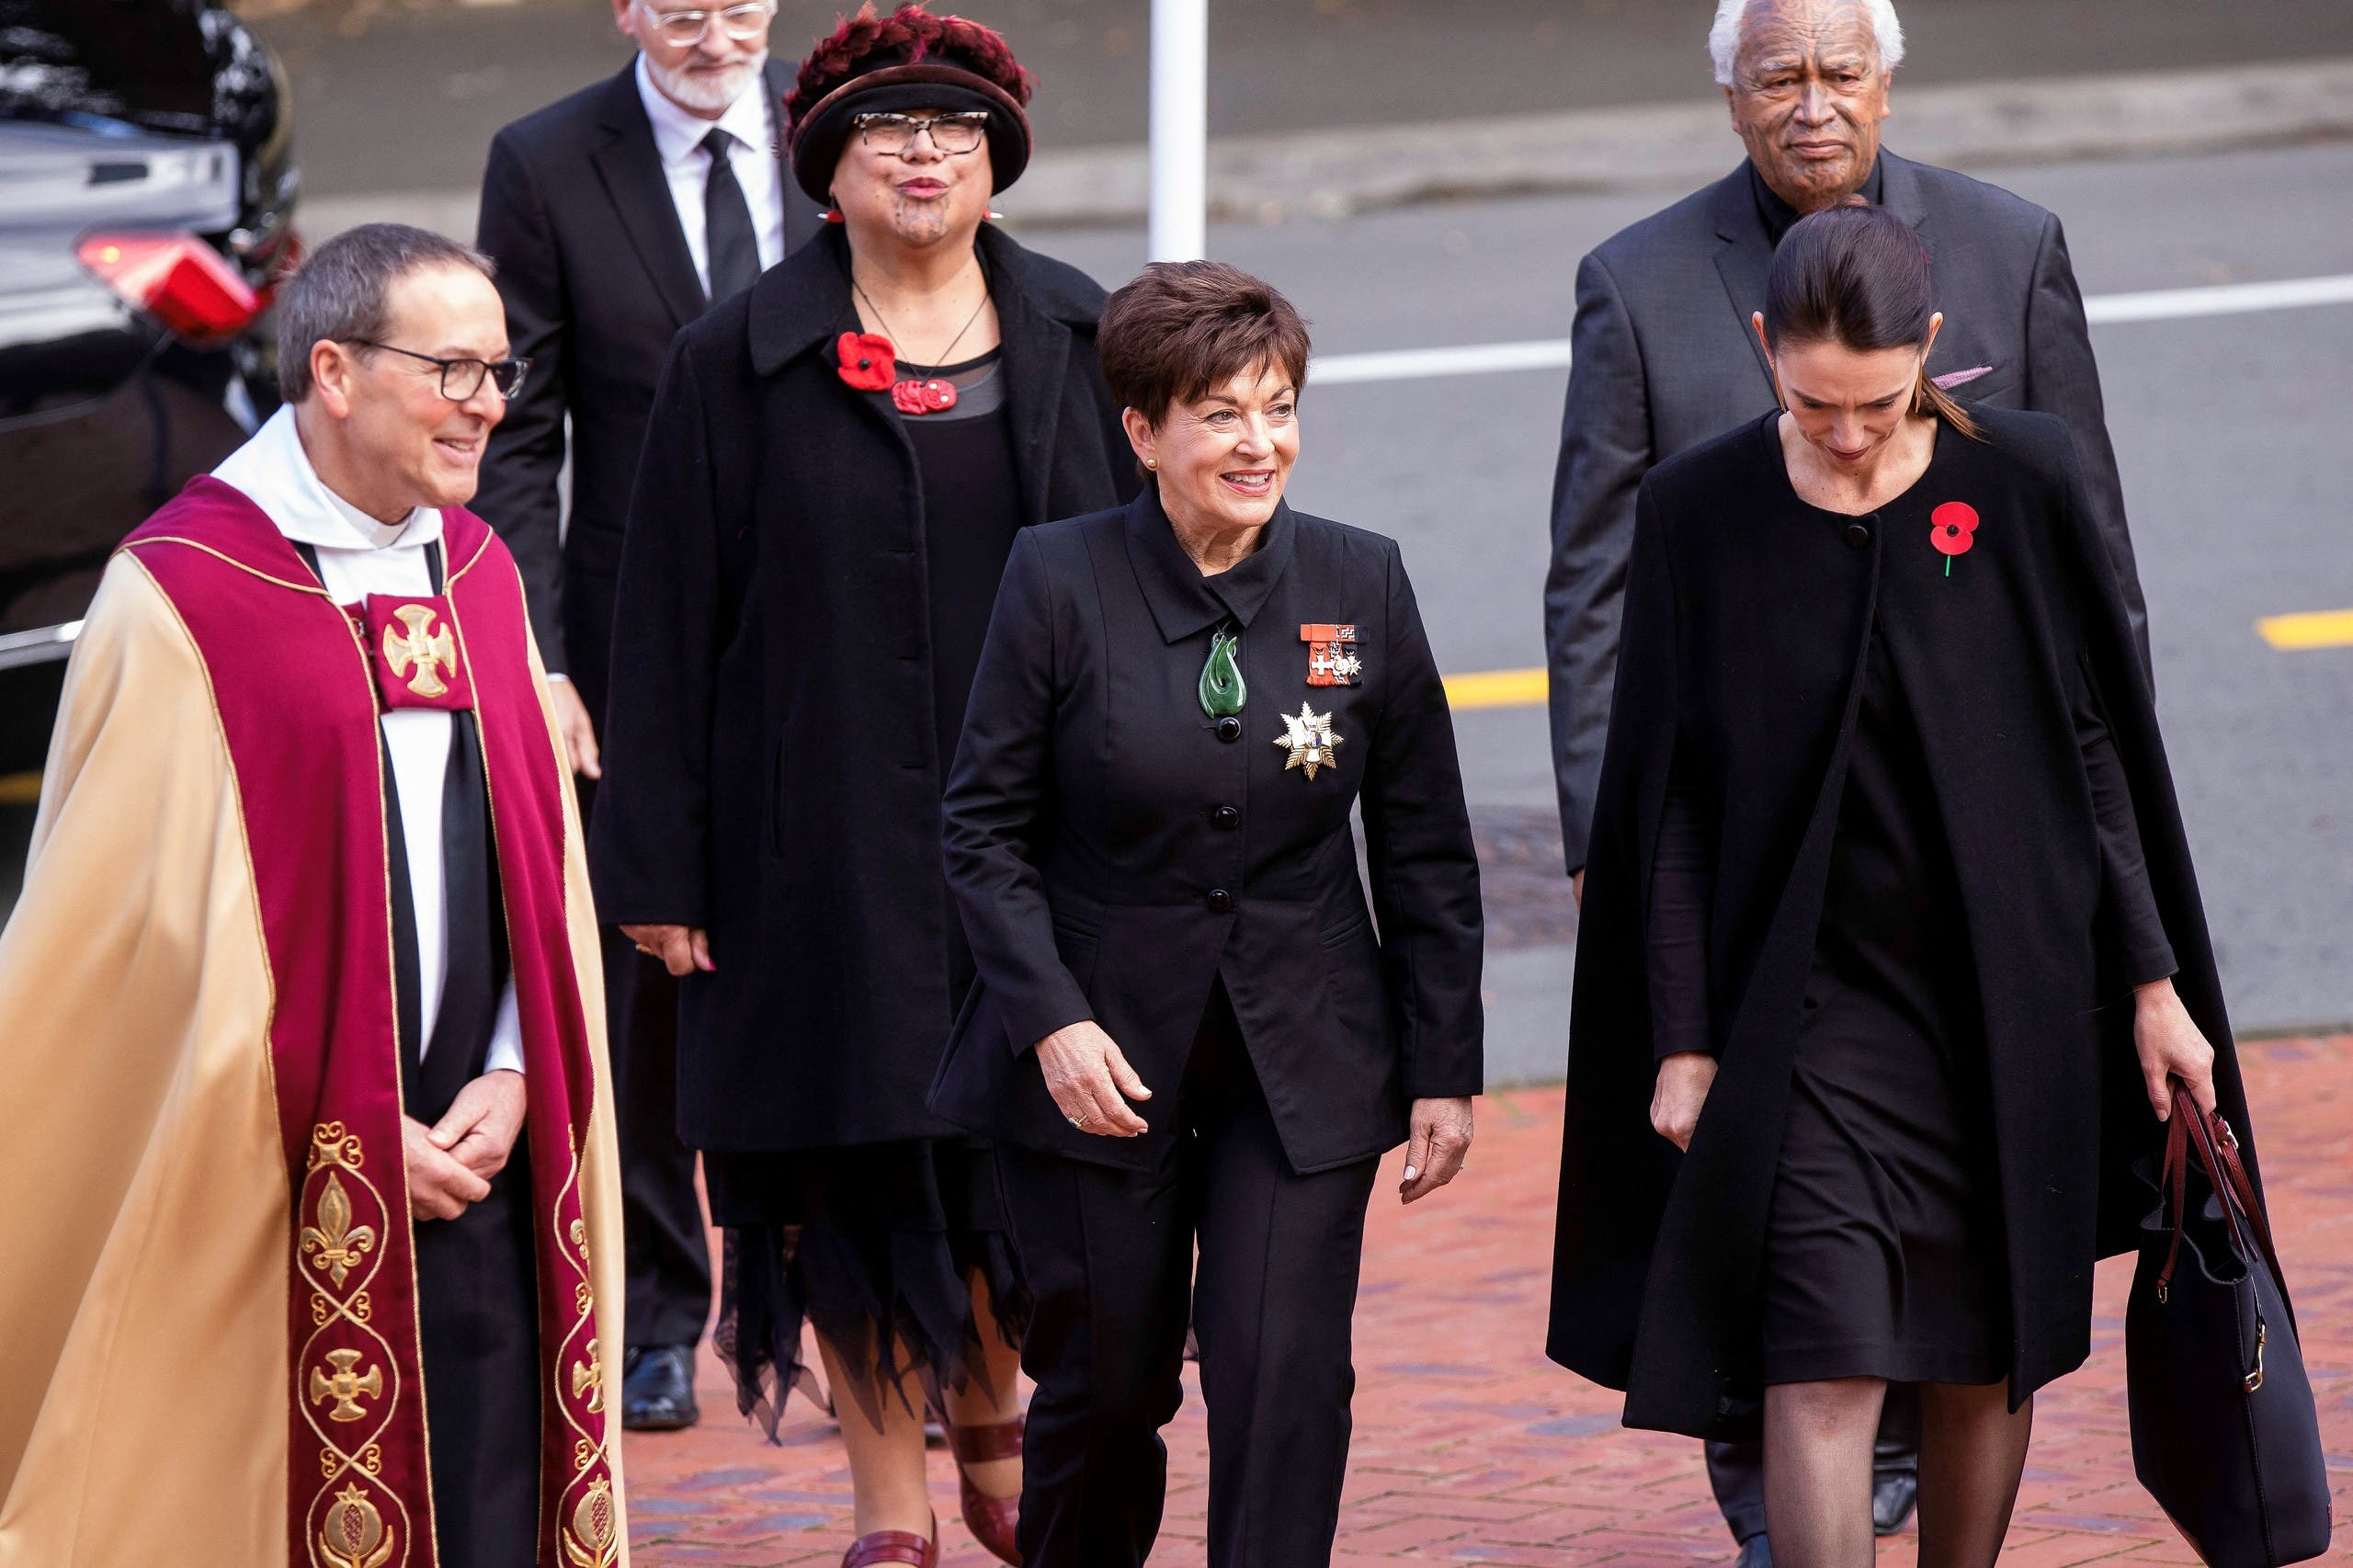 New Zealand Governor General Patsy Reddy (C) and Prime Minister Jacinda Ardern (R) arrive to attend the State Memorial Service for Britain's Prince Philip, Duke of Edinburgh at the Wellington Cathedral of St Paul on April 21, 2021. (File photo: AFP)